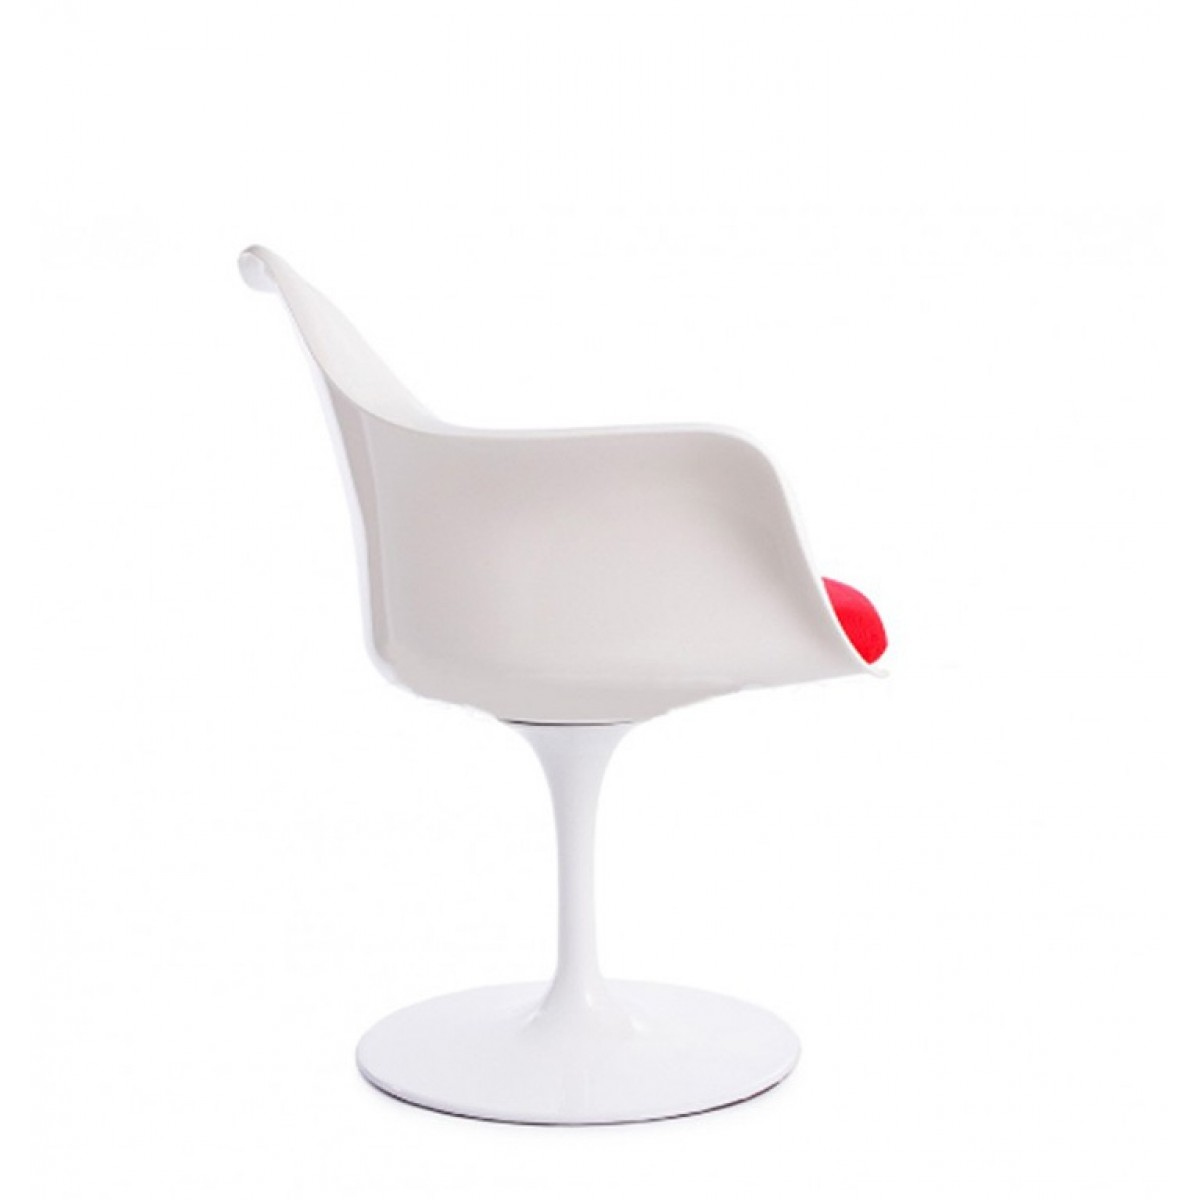 Eero saarinen style tulip arm chair white replica for Eero saarinen tulip armchair